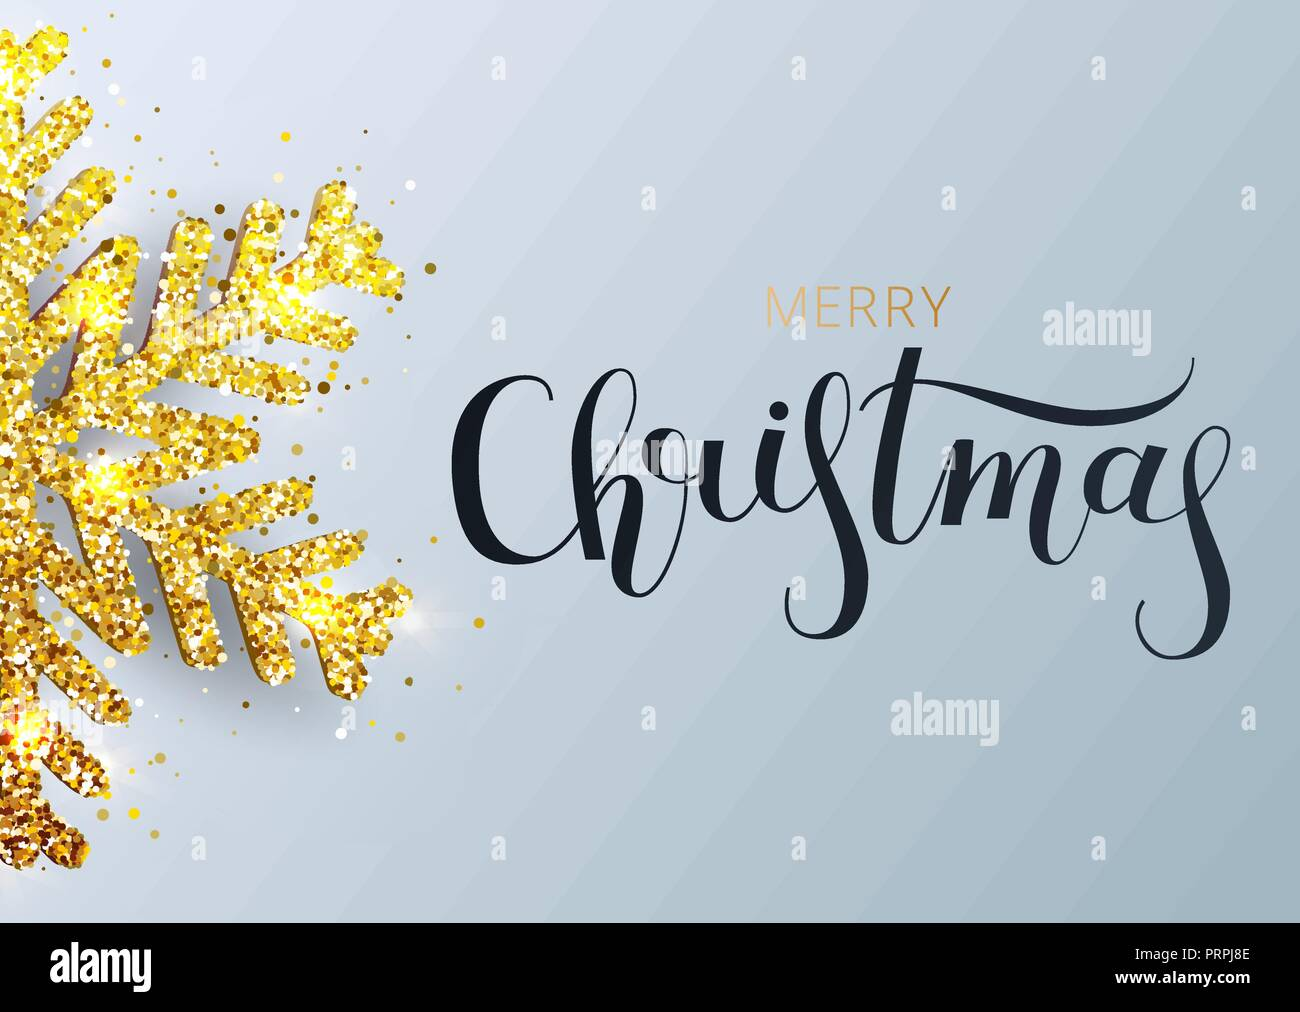 greeting card invitation with happy new year 2019 hand written lettering metallic gold christmas snowflake decoration shimmering shiny confetti